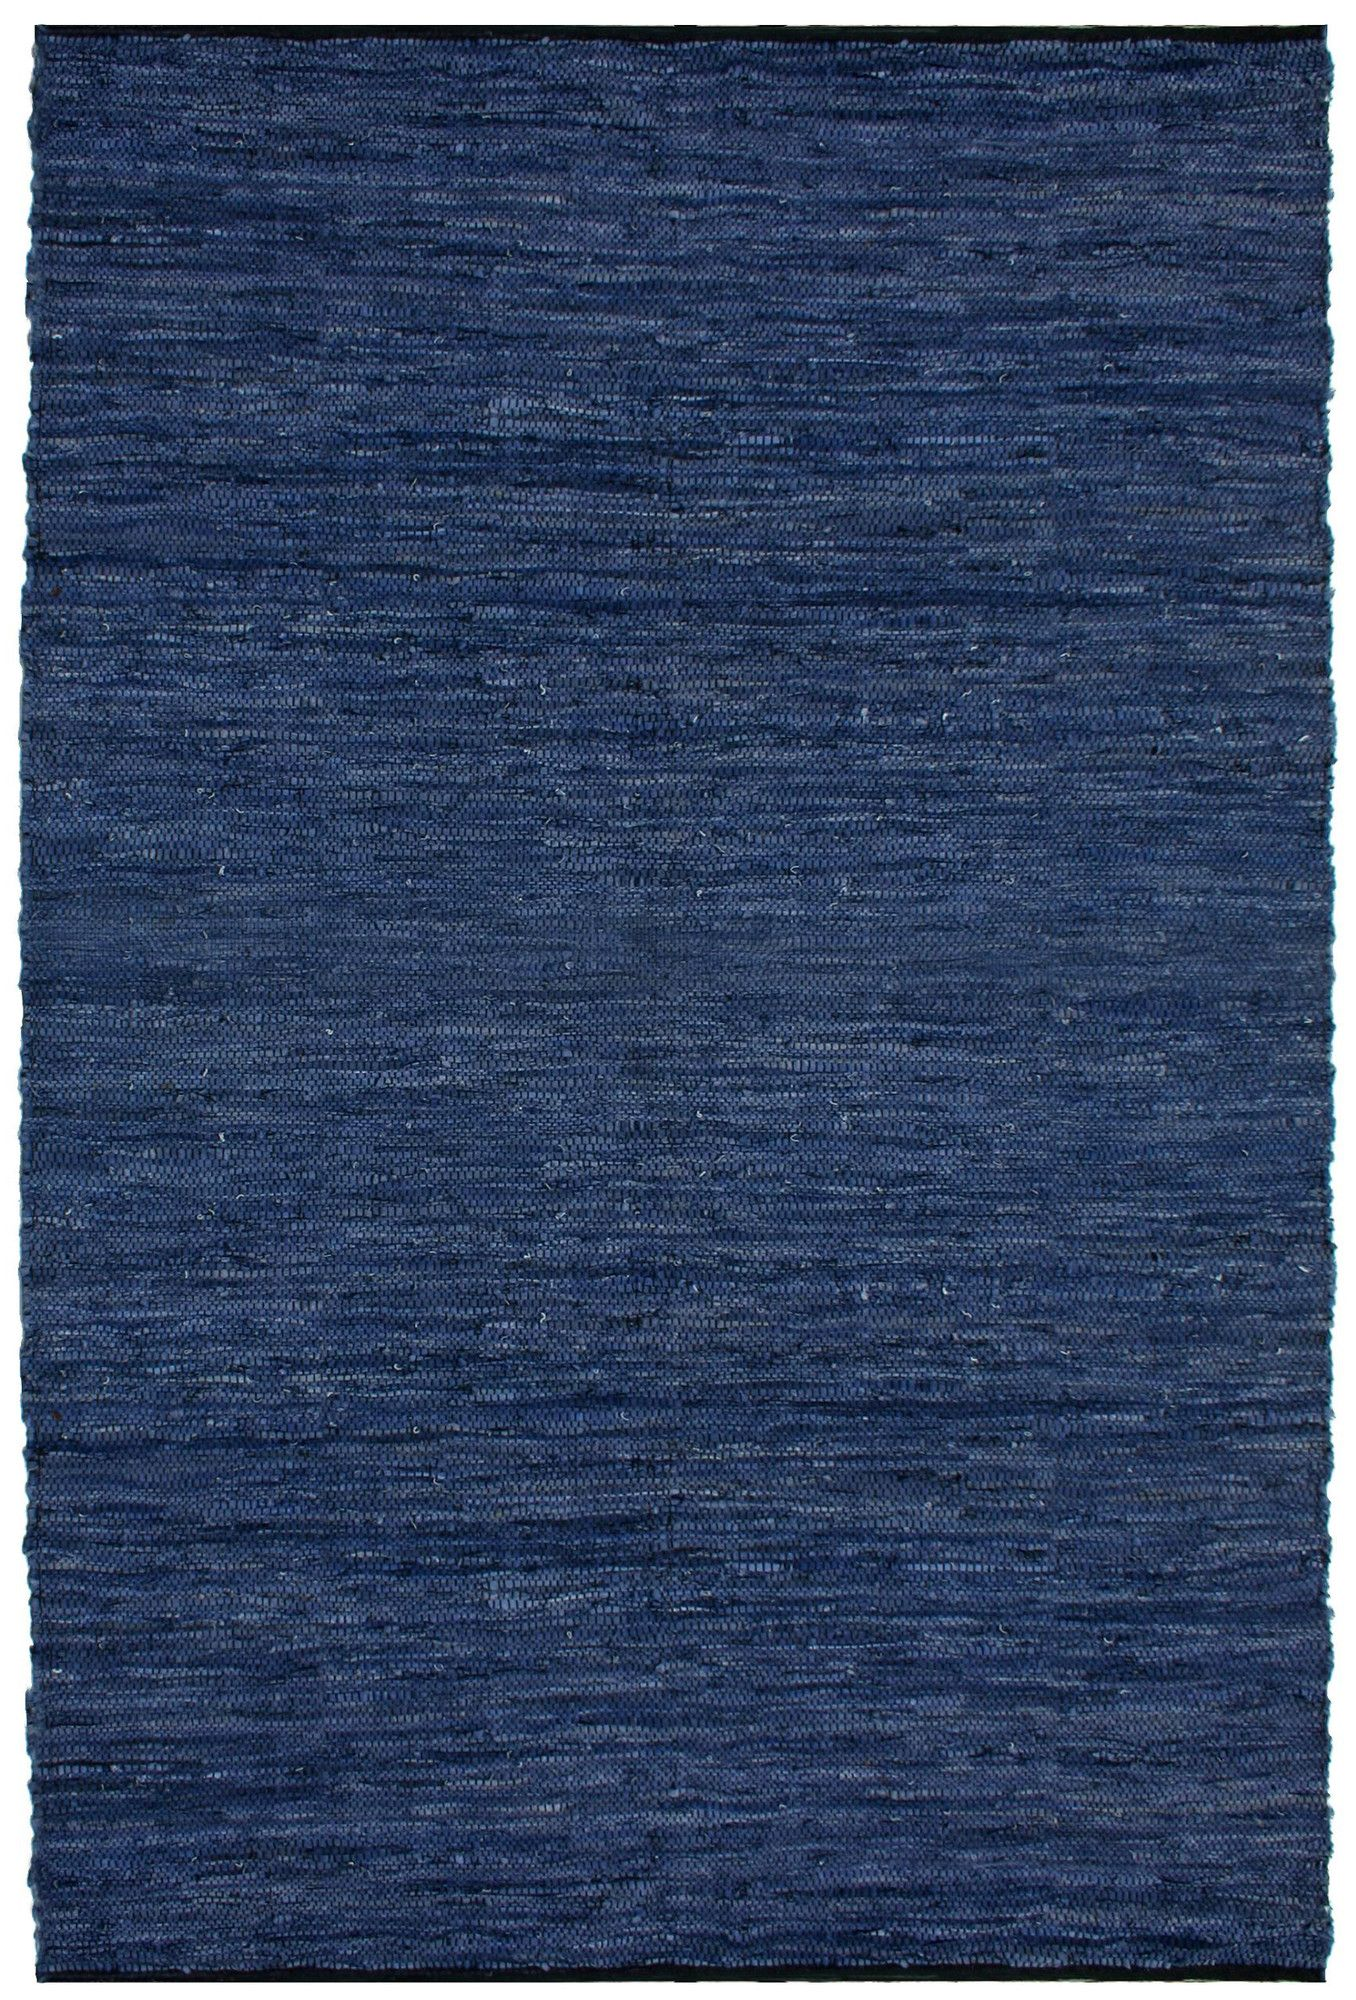 St Croix Matador Leather Chindi Blue Area Rug Reviews Wayfair 8x10